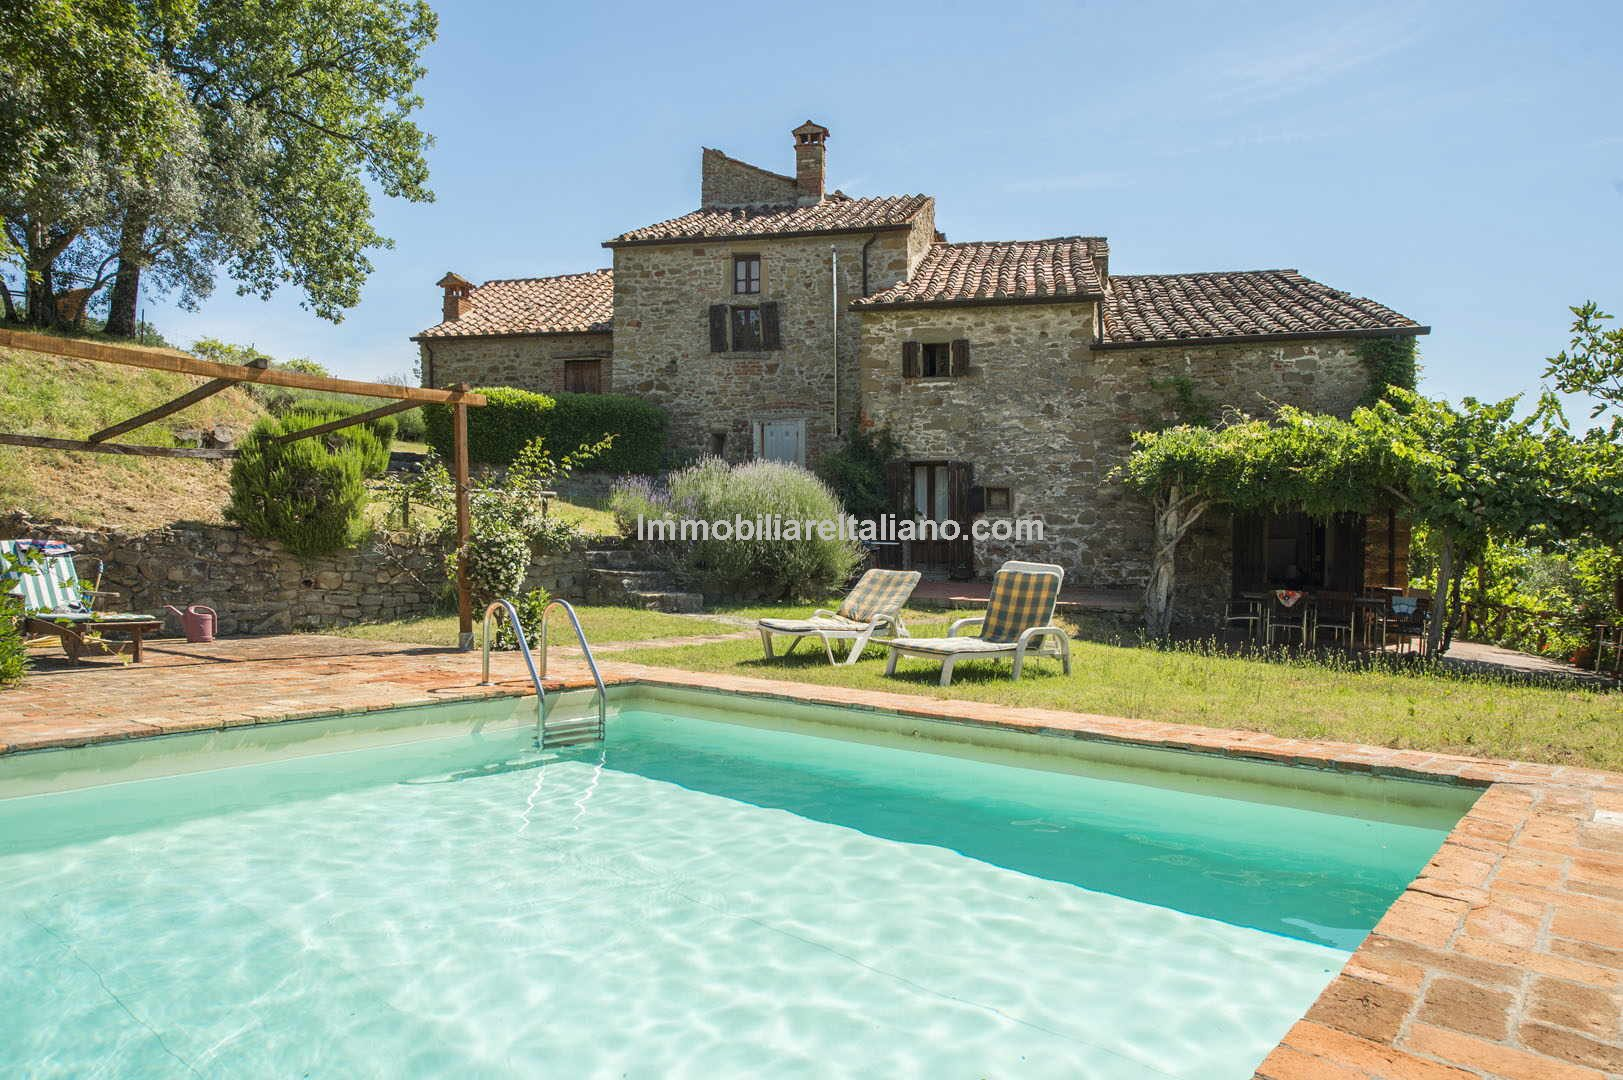 Large farmhouse in Tuscany with pool